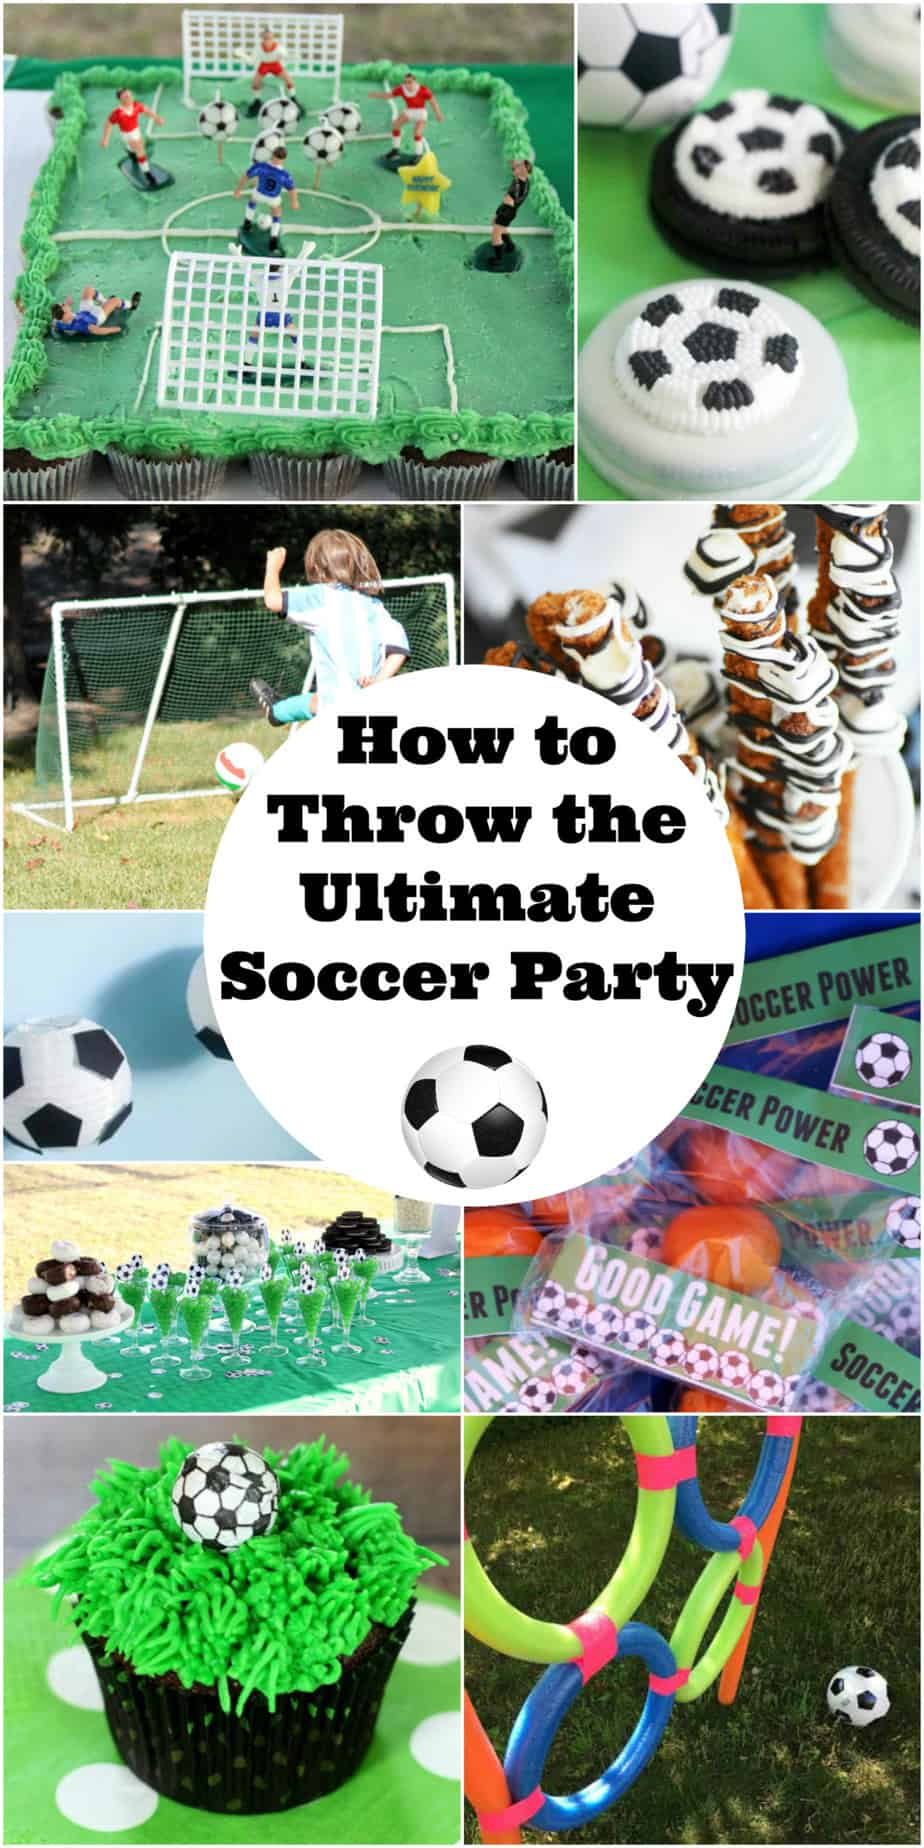 How To Throw The Ultimate Soccer Party